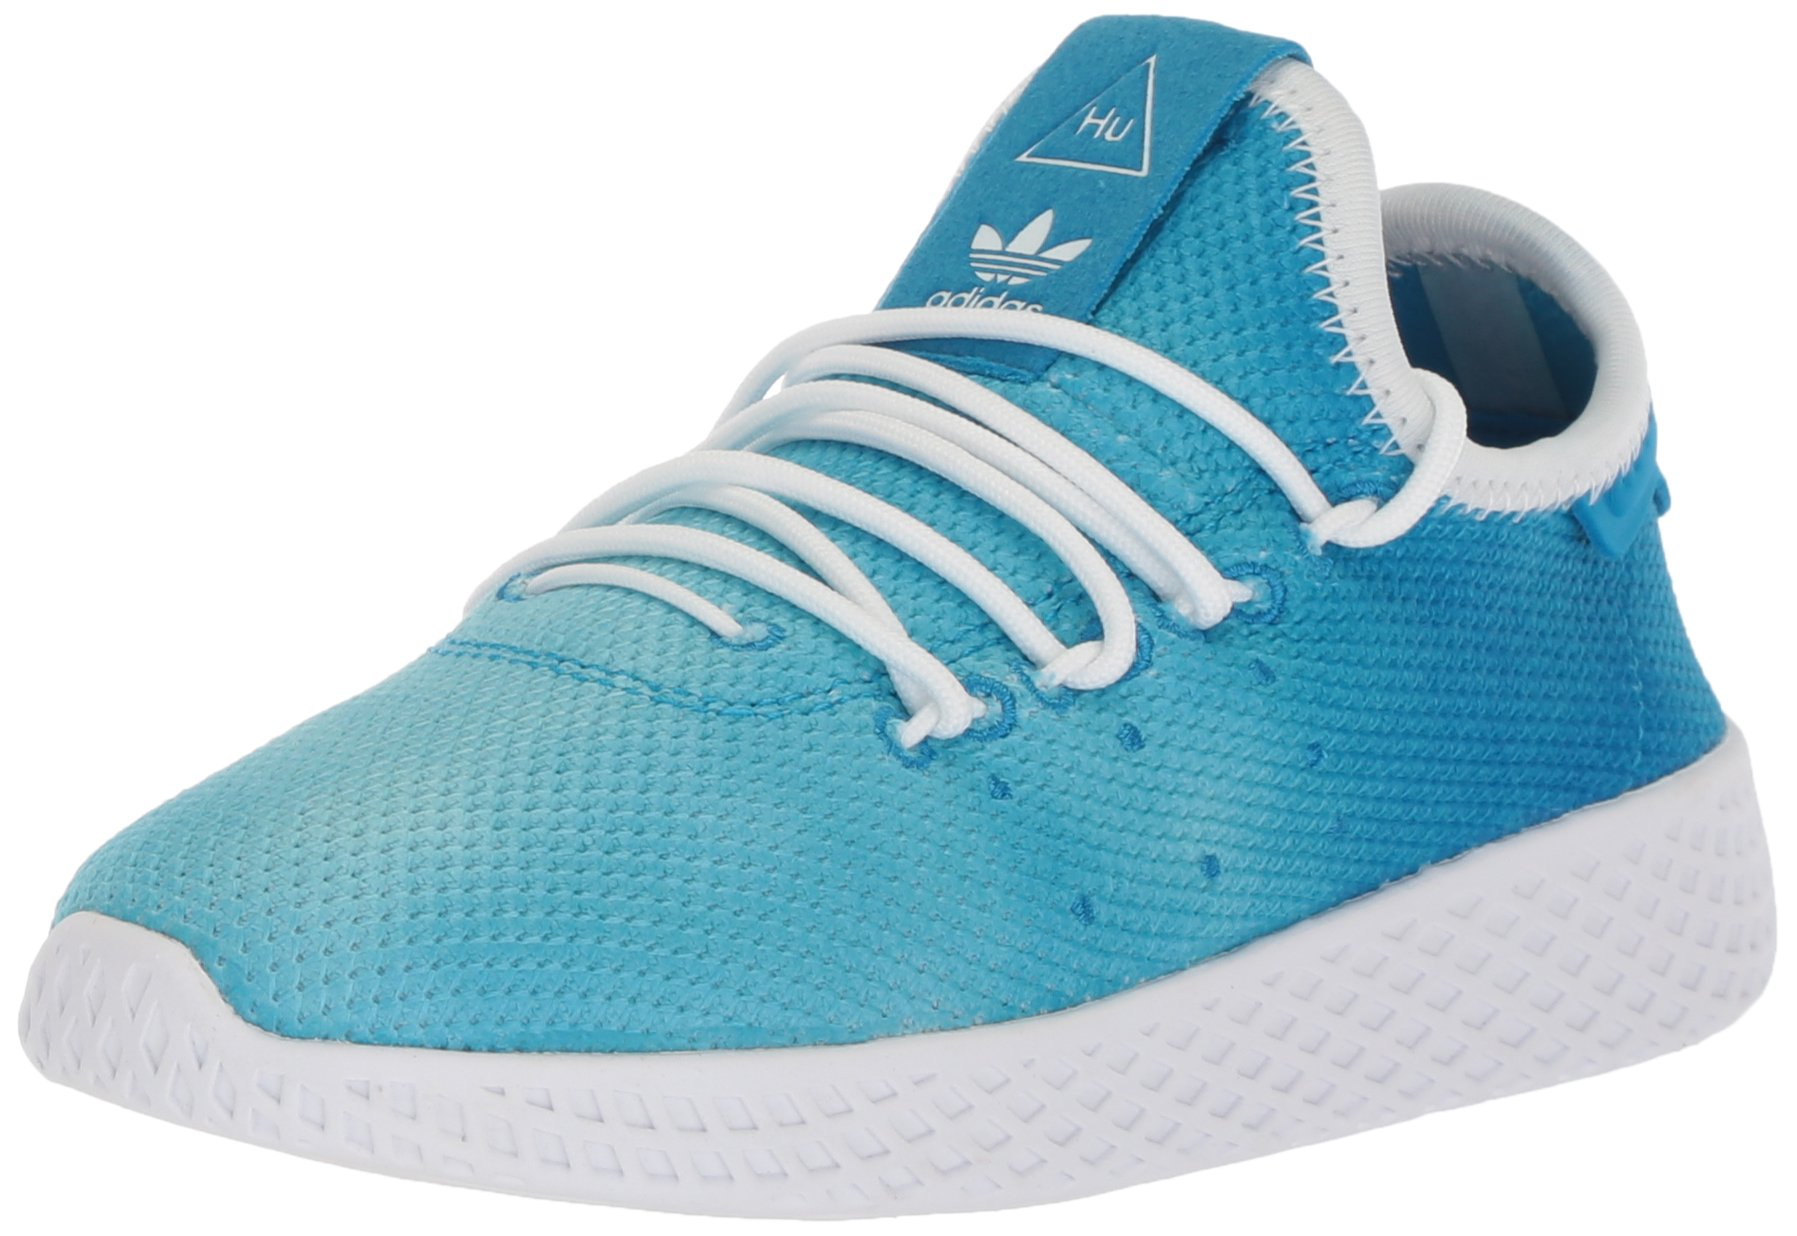 fafa934399b Galleon - Adidas Unisex-Kids PW Tennis HU C